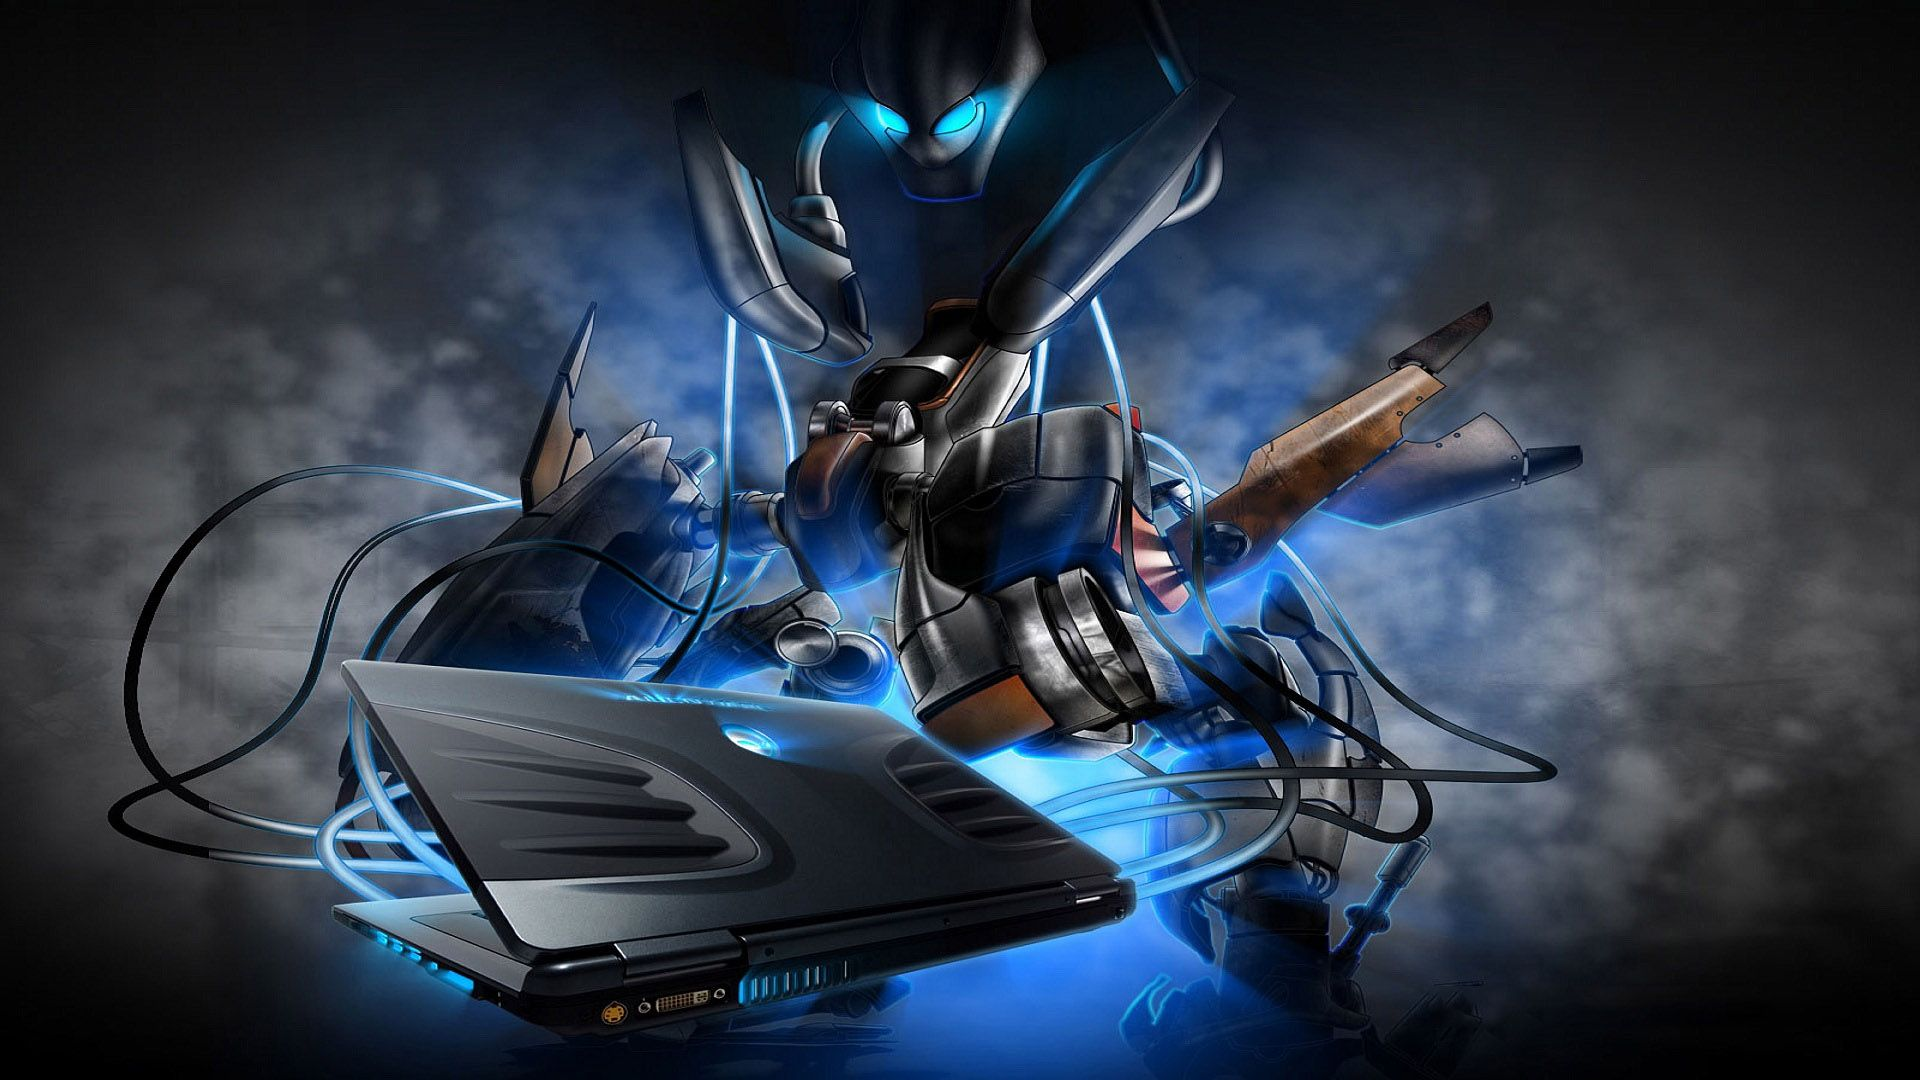 3d Alienware Mech Hd Wallpaper Seni Karakter Gambar Disney Up